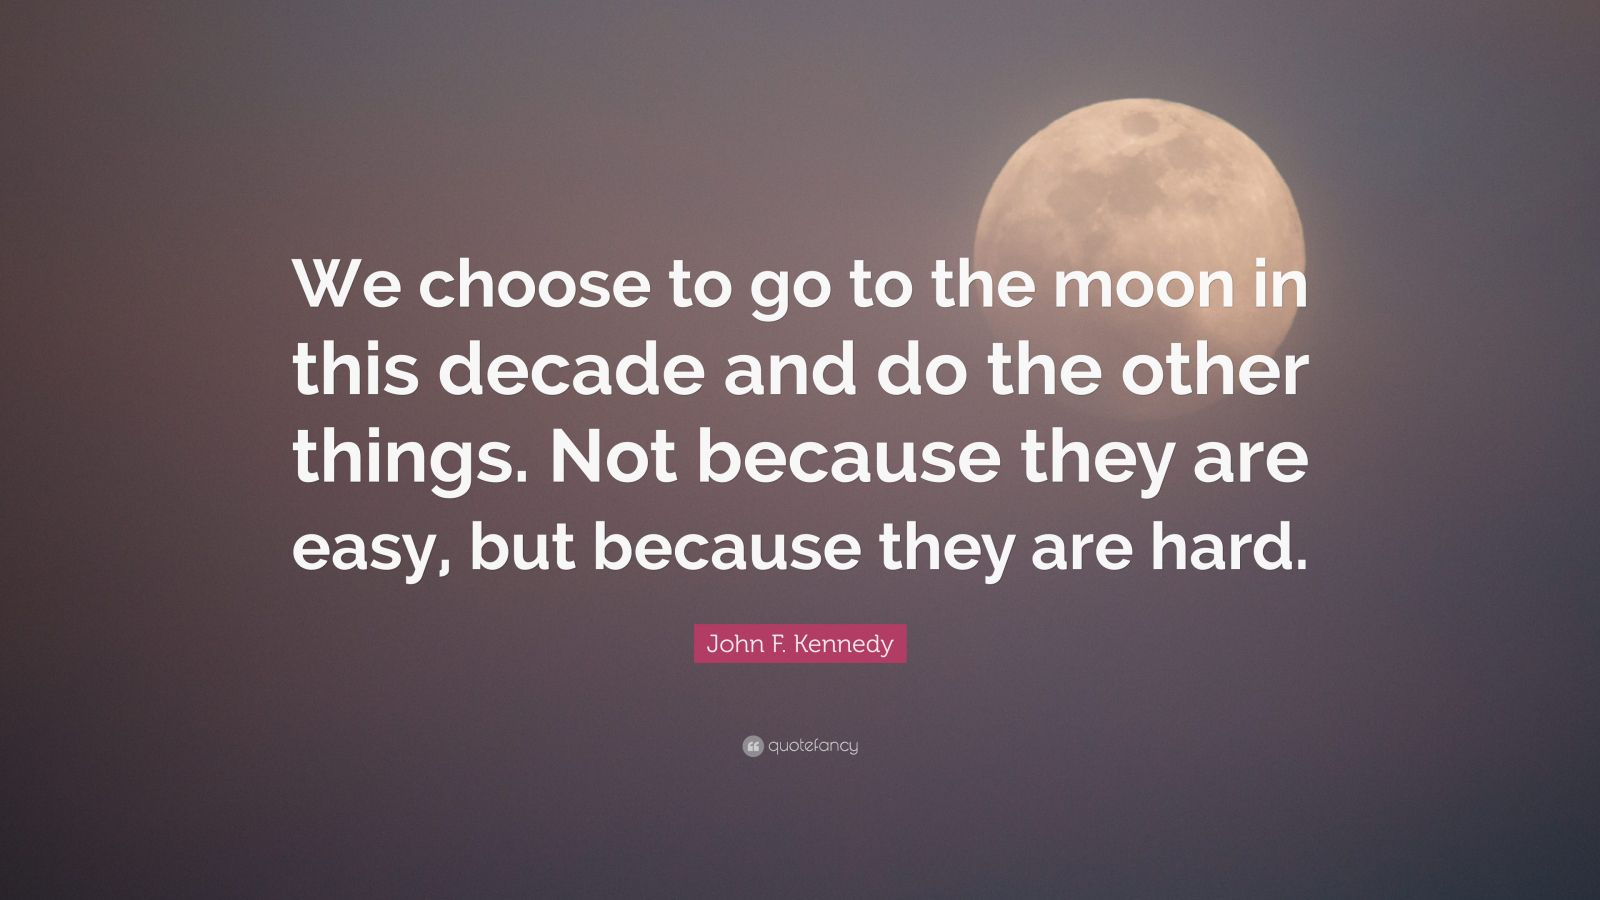 """John F. Kennedy Quote: """"We choose to go to the moon in this decade and do the other things. Not because they are easy, but because they are hard."""""""